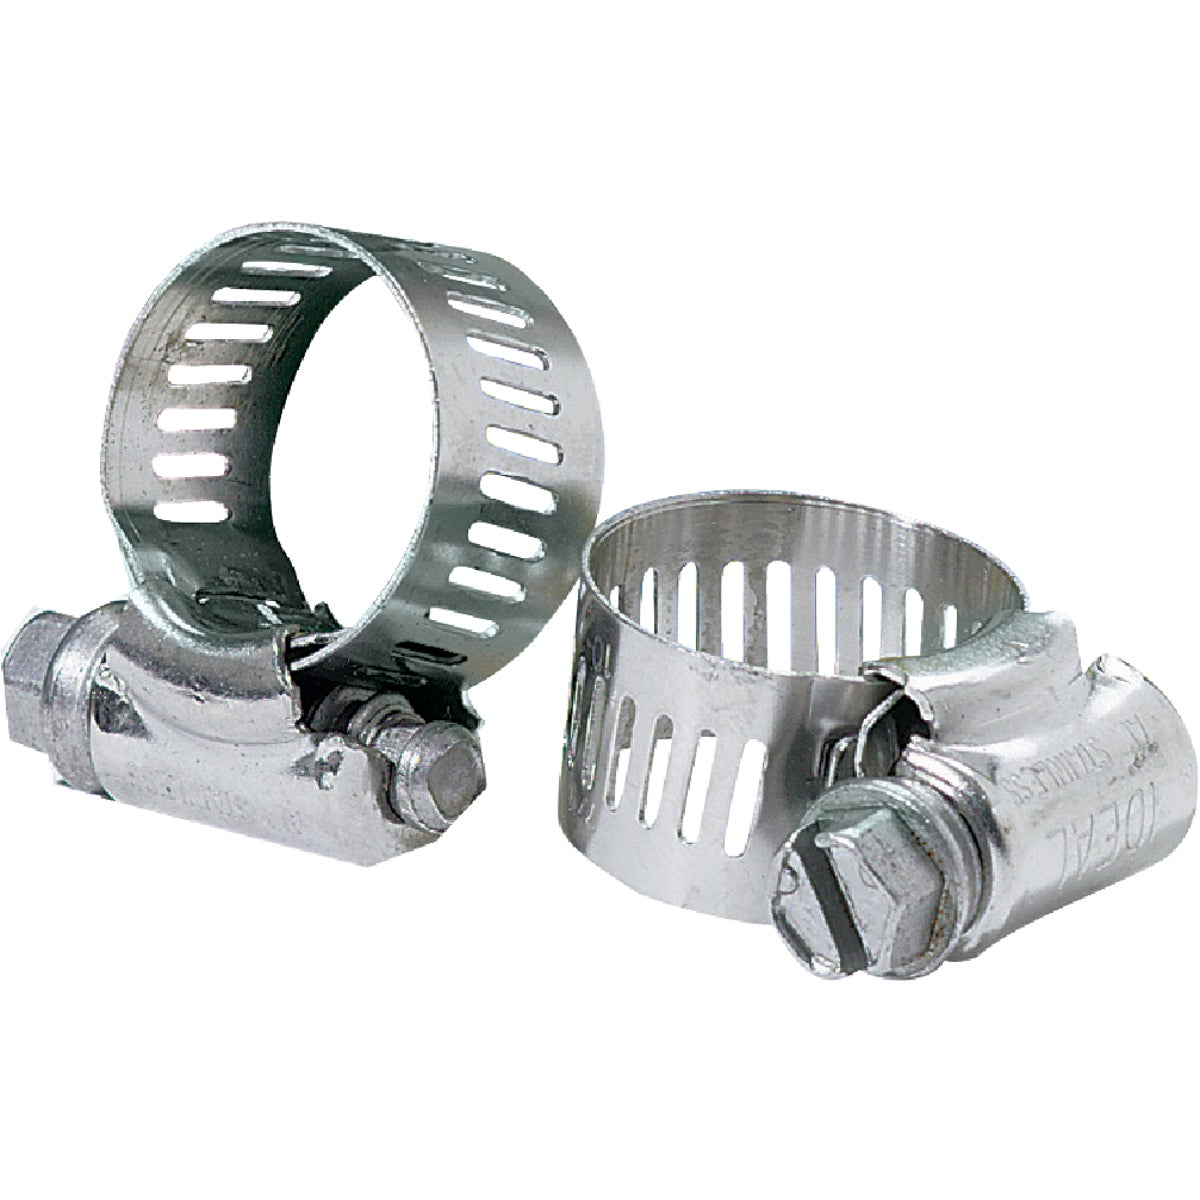 "4-1/2"" TO 6-1/2"" CLAMP"